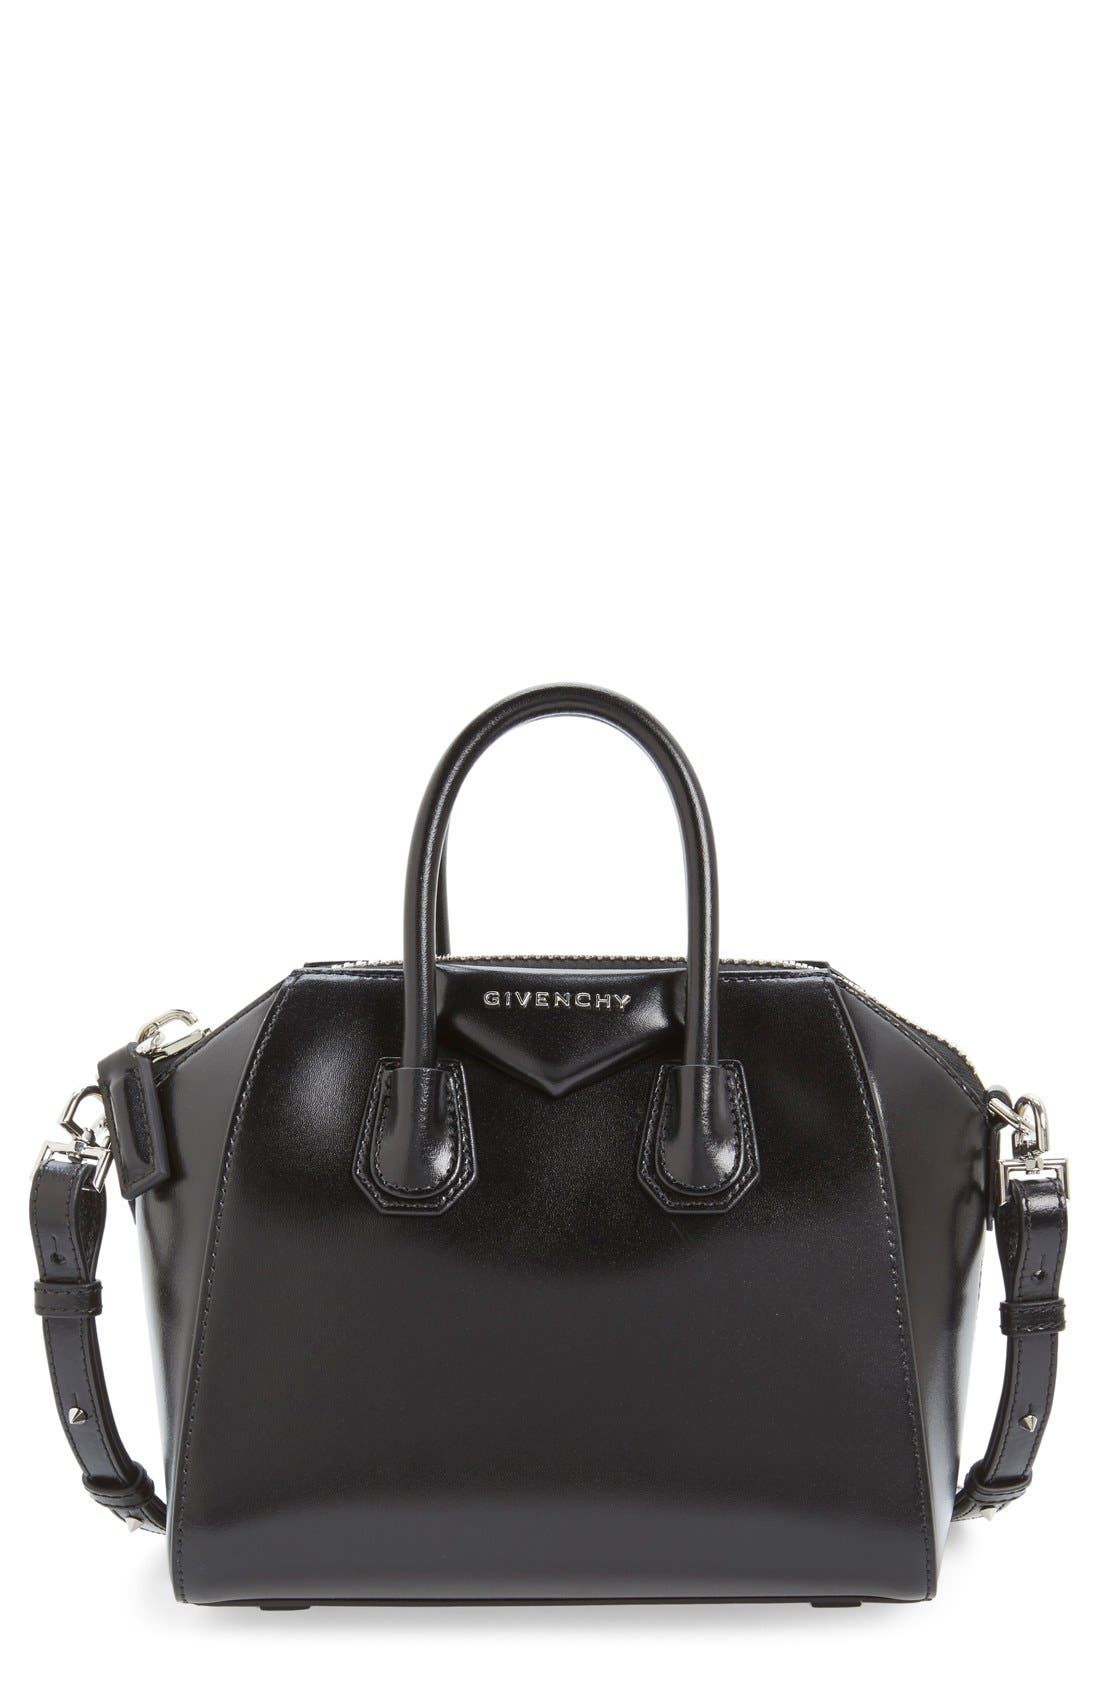 Main Image - Givenchy 'Mini Antigona' Box Leather Satchel